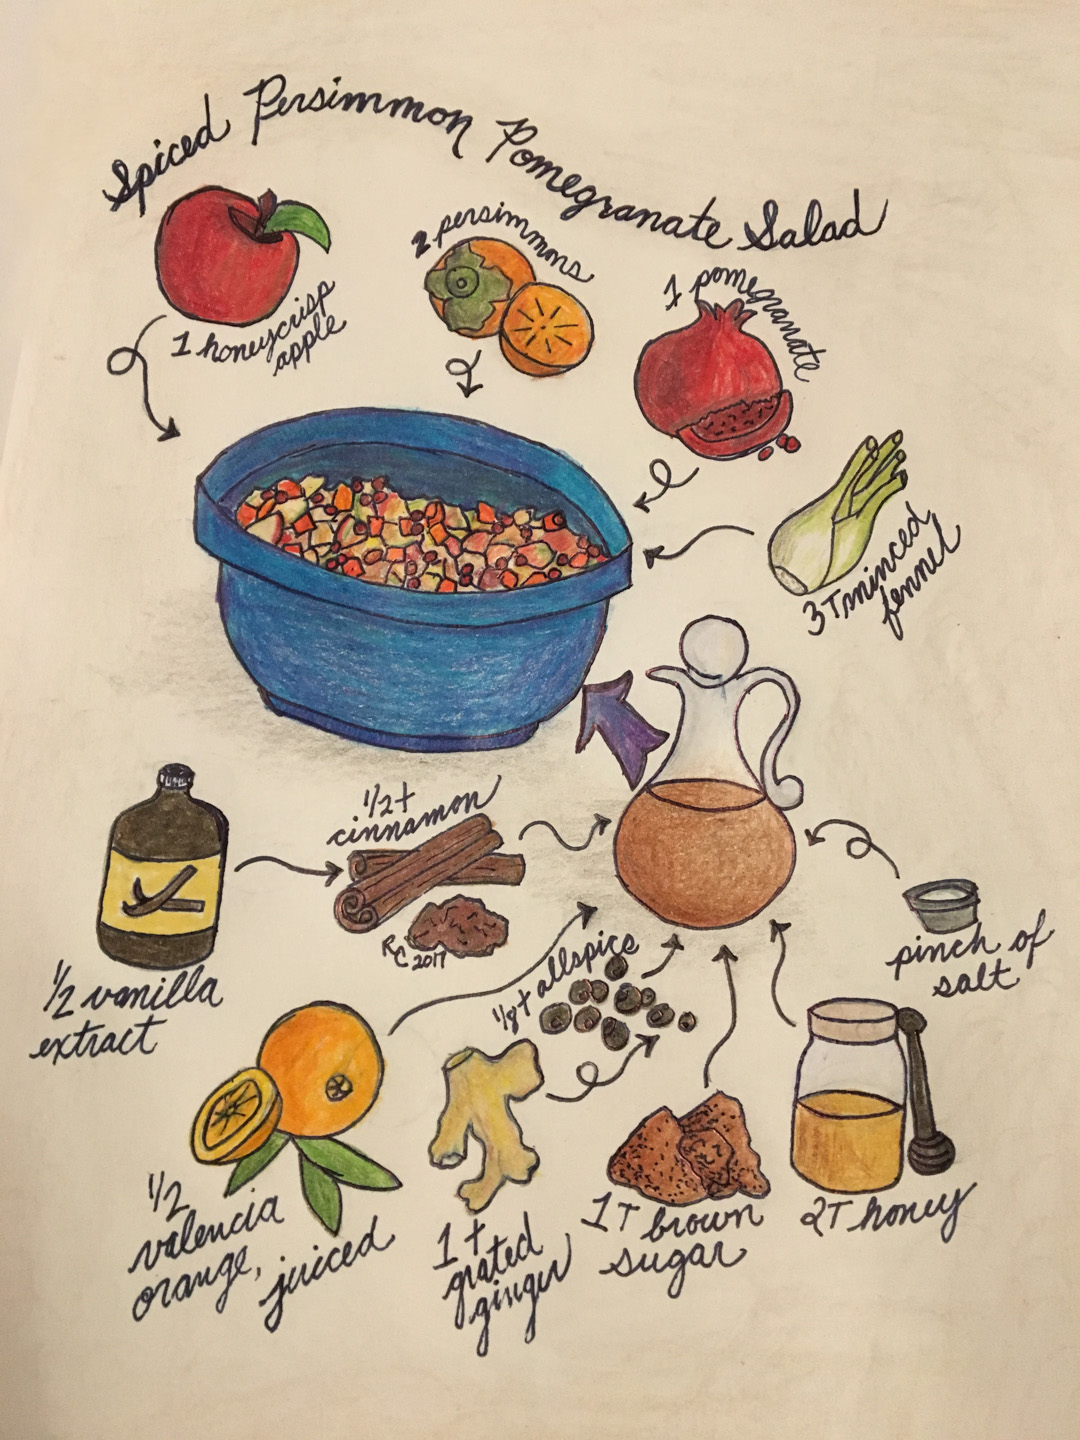 Spiced Persimmon Pomegranate Salad - a recipe sketch